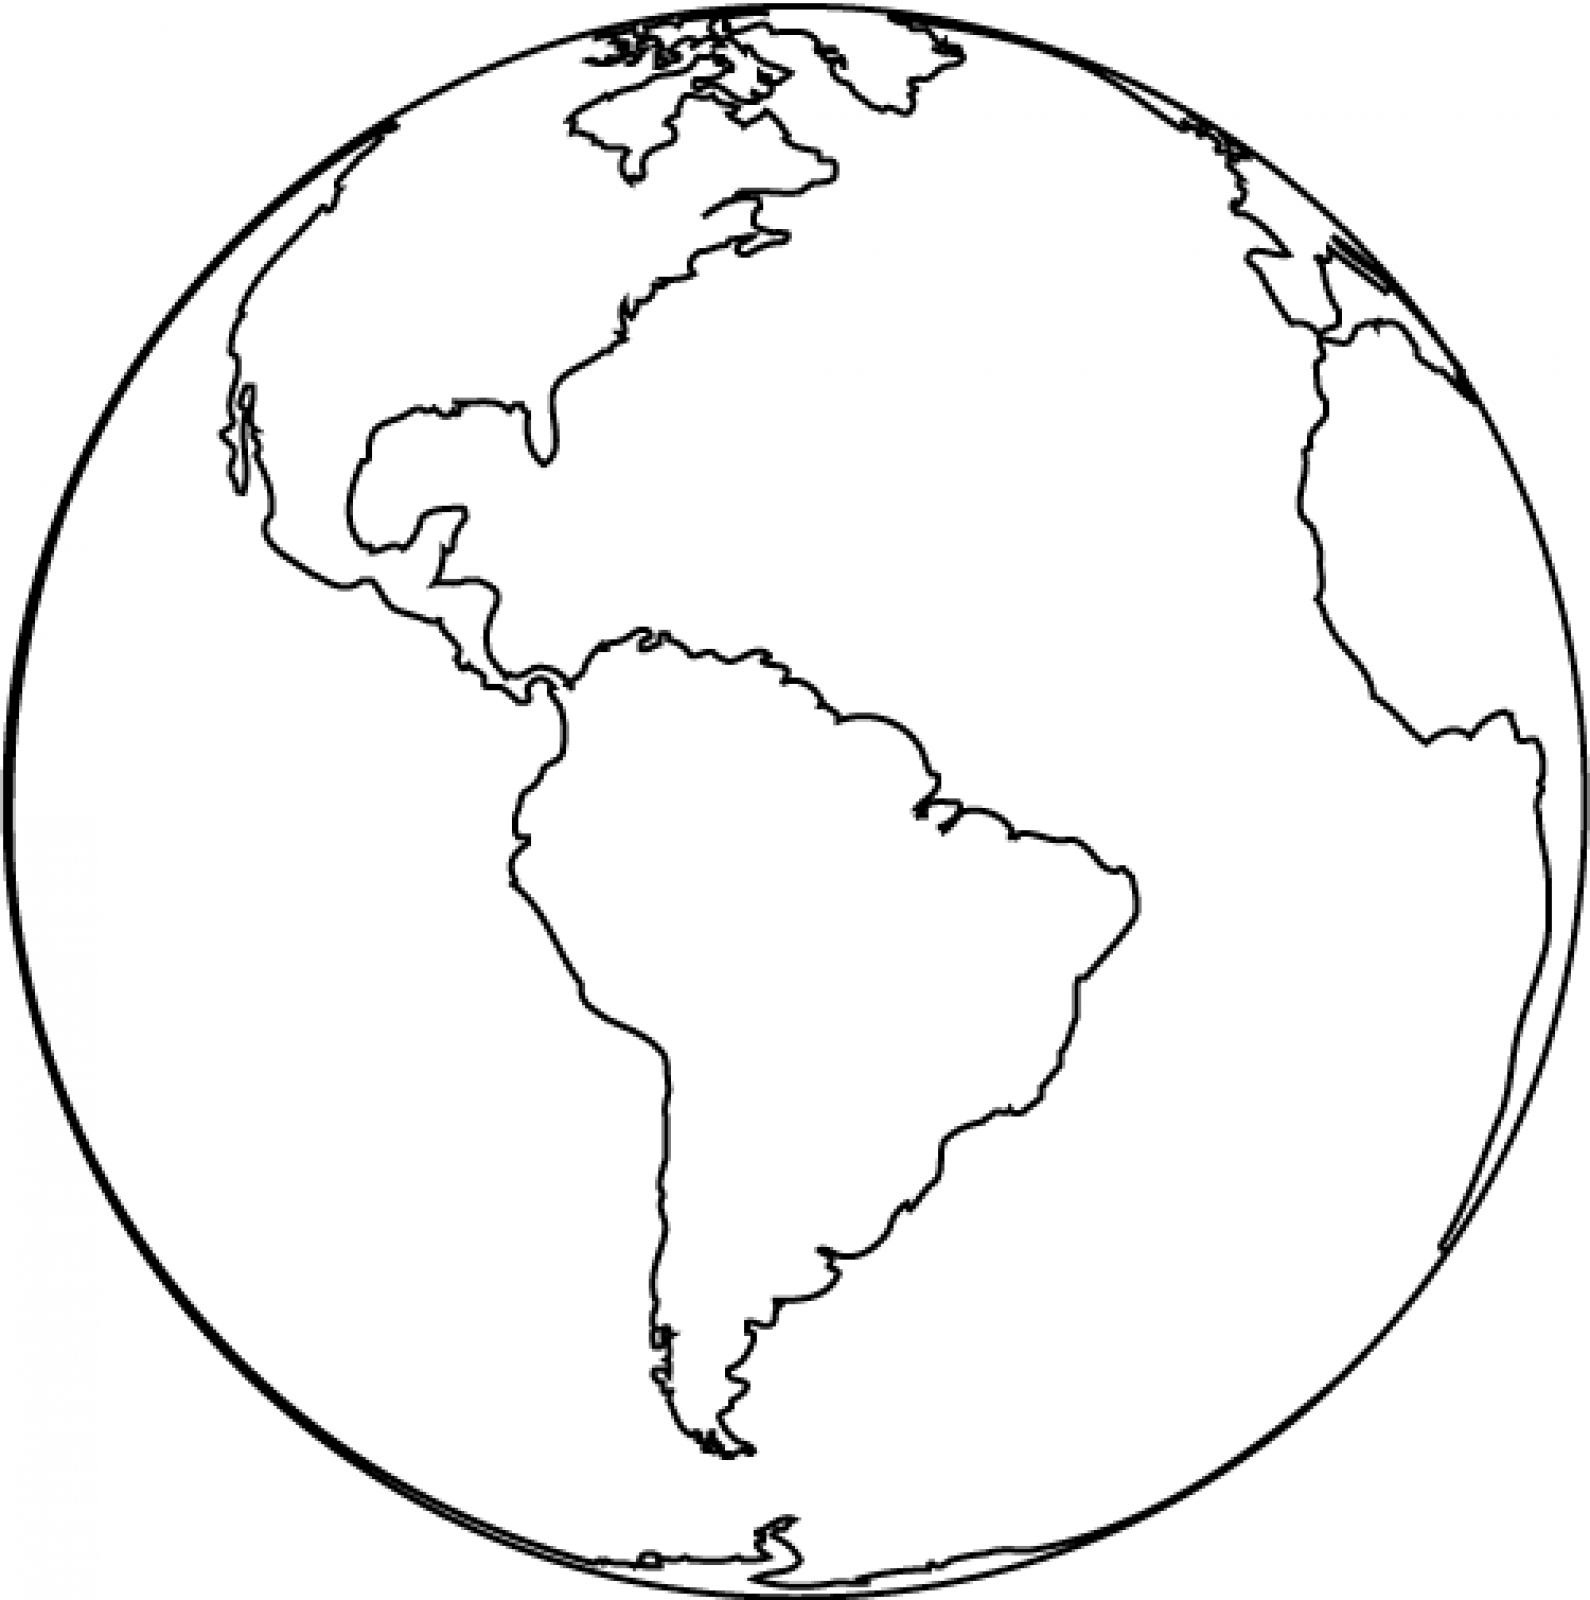 1590x1600 Sketch Of Planet Earth Drawing Of The Earth Planet Earth Clipart